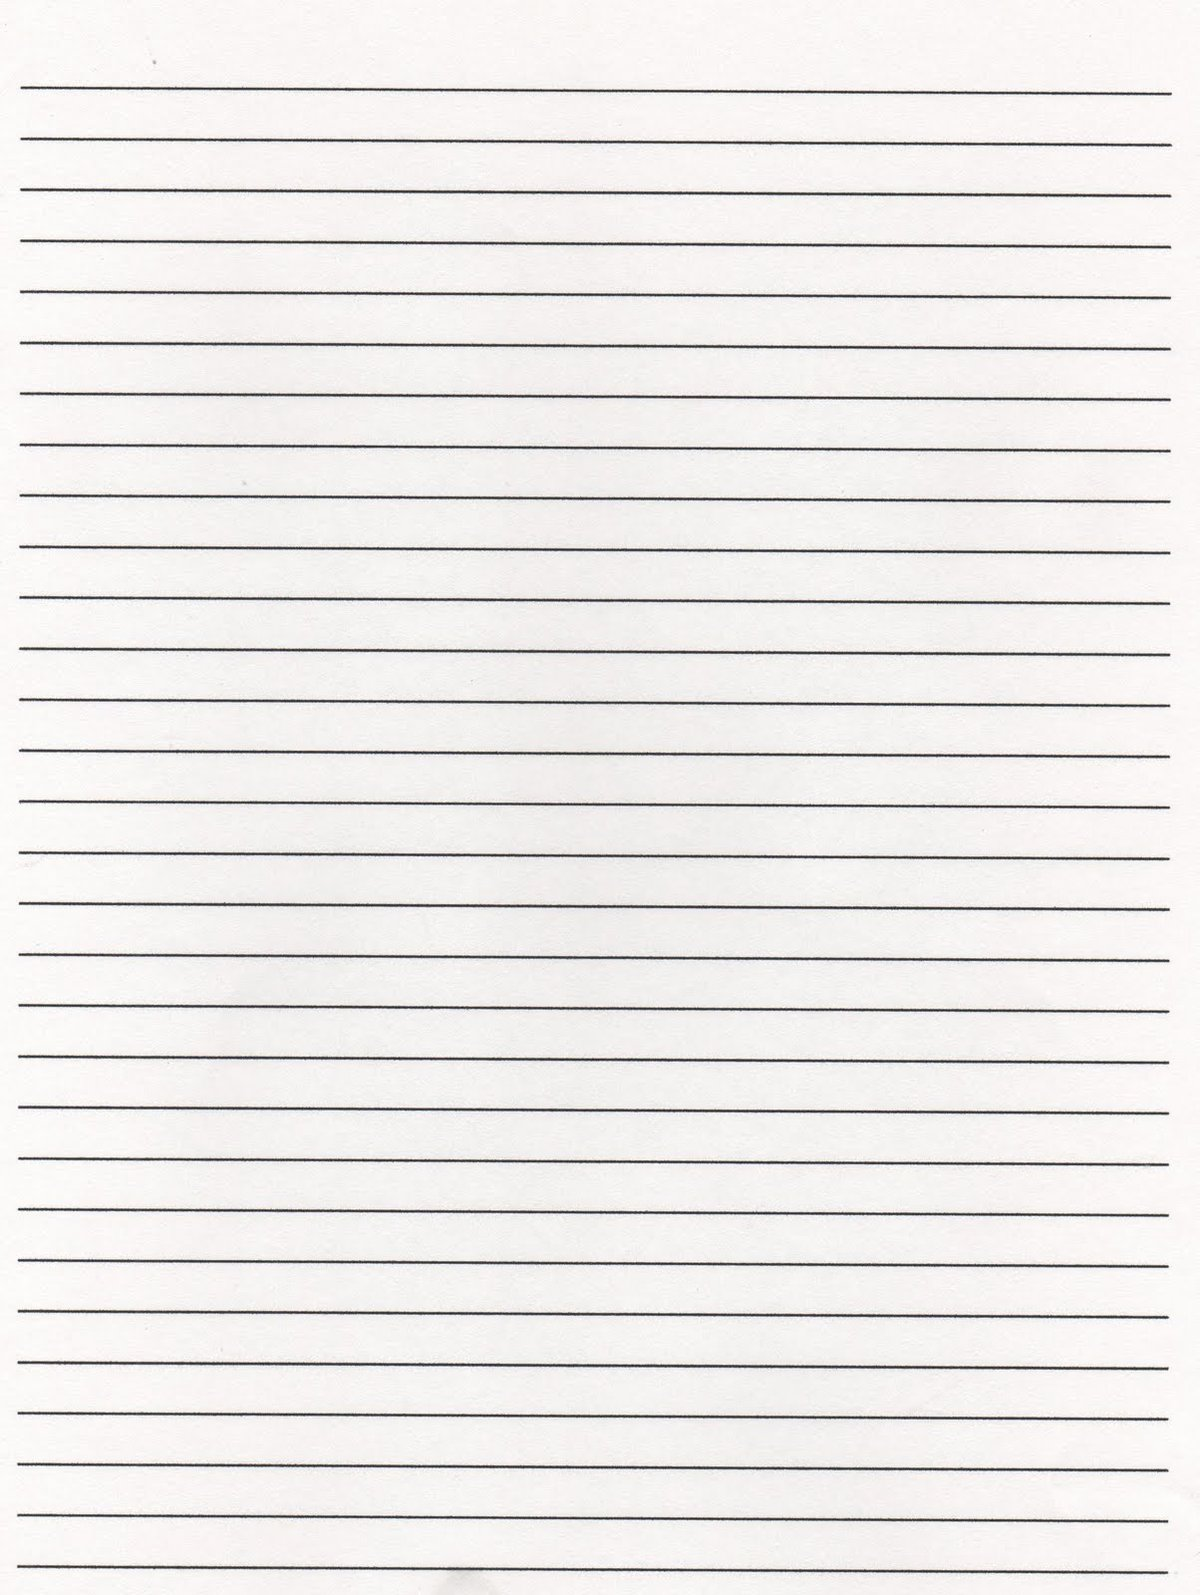 writting paper Printable writing paper for kids from all kids network these versions of lined paper include small and normal sized lines as well as layouts with spots for kids to draw pictures.